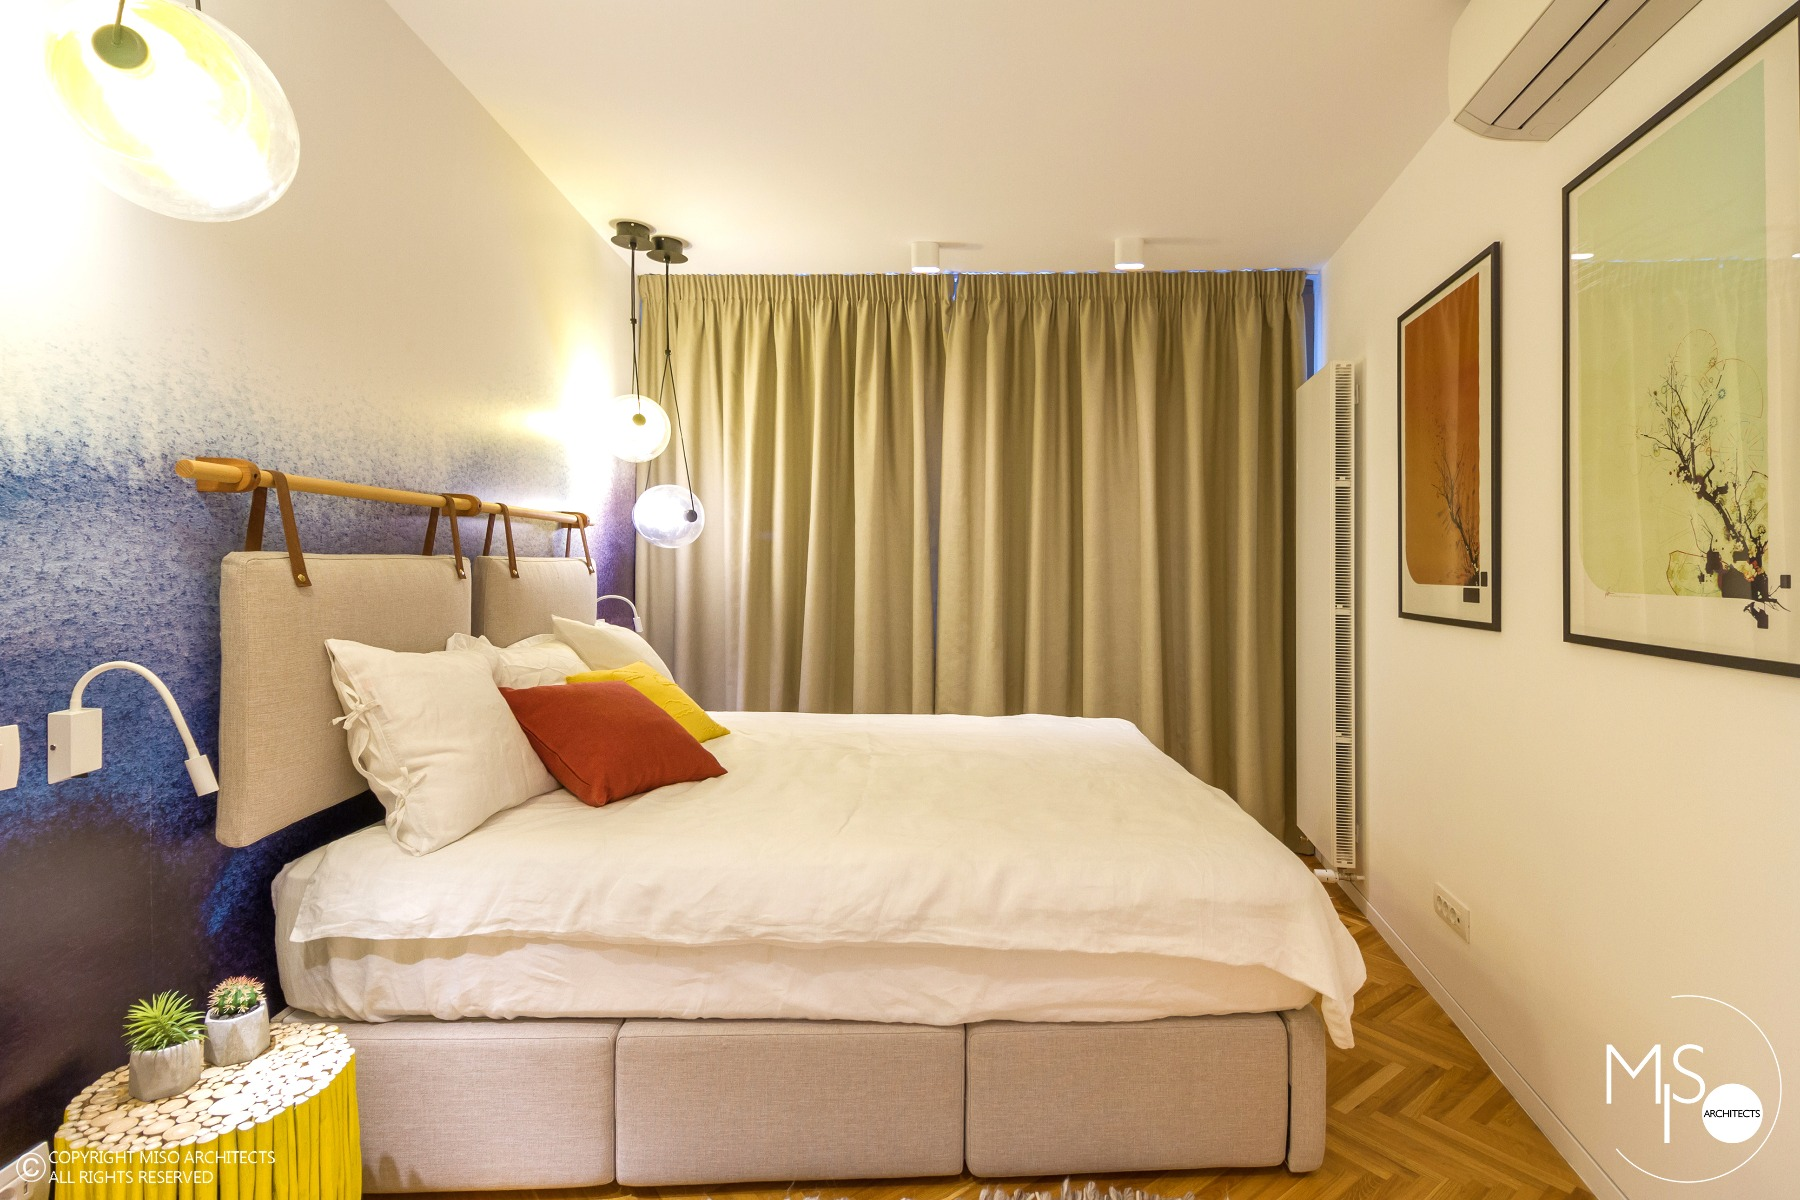 Apartament viu colorat